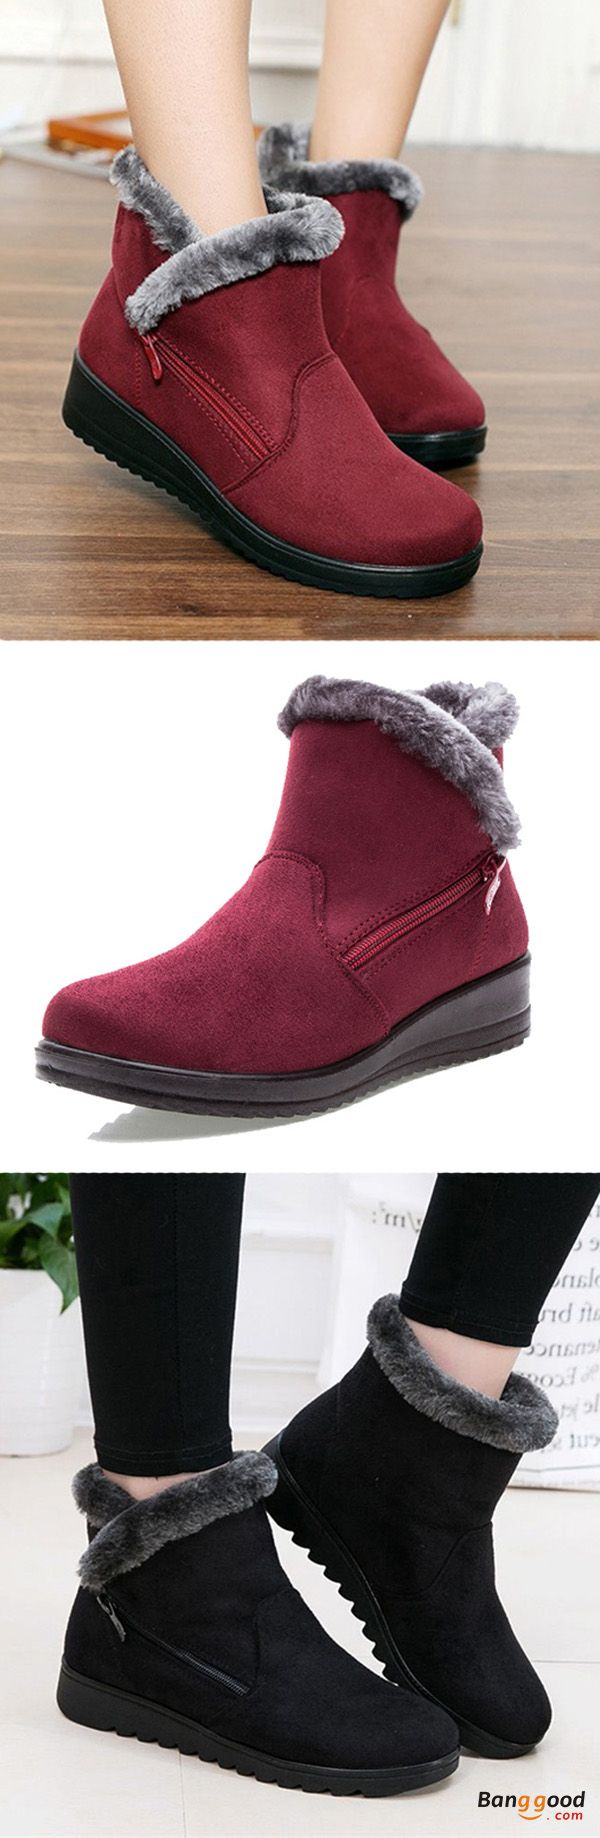 US$24.75 + Free shipping. New Large Size Women Winter Boots Round Toe Ankle Short Snow Boots. Snow Boots for fall-winter, Women's shoe boots, casual boots, winter style, fall winter shoes for women. Color: Black, Brown, Red. Get the look!